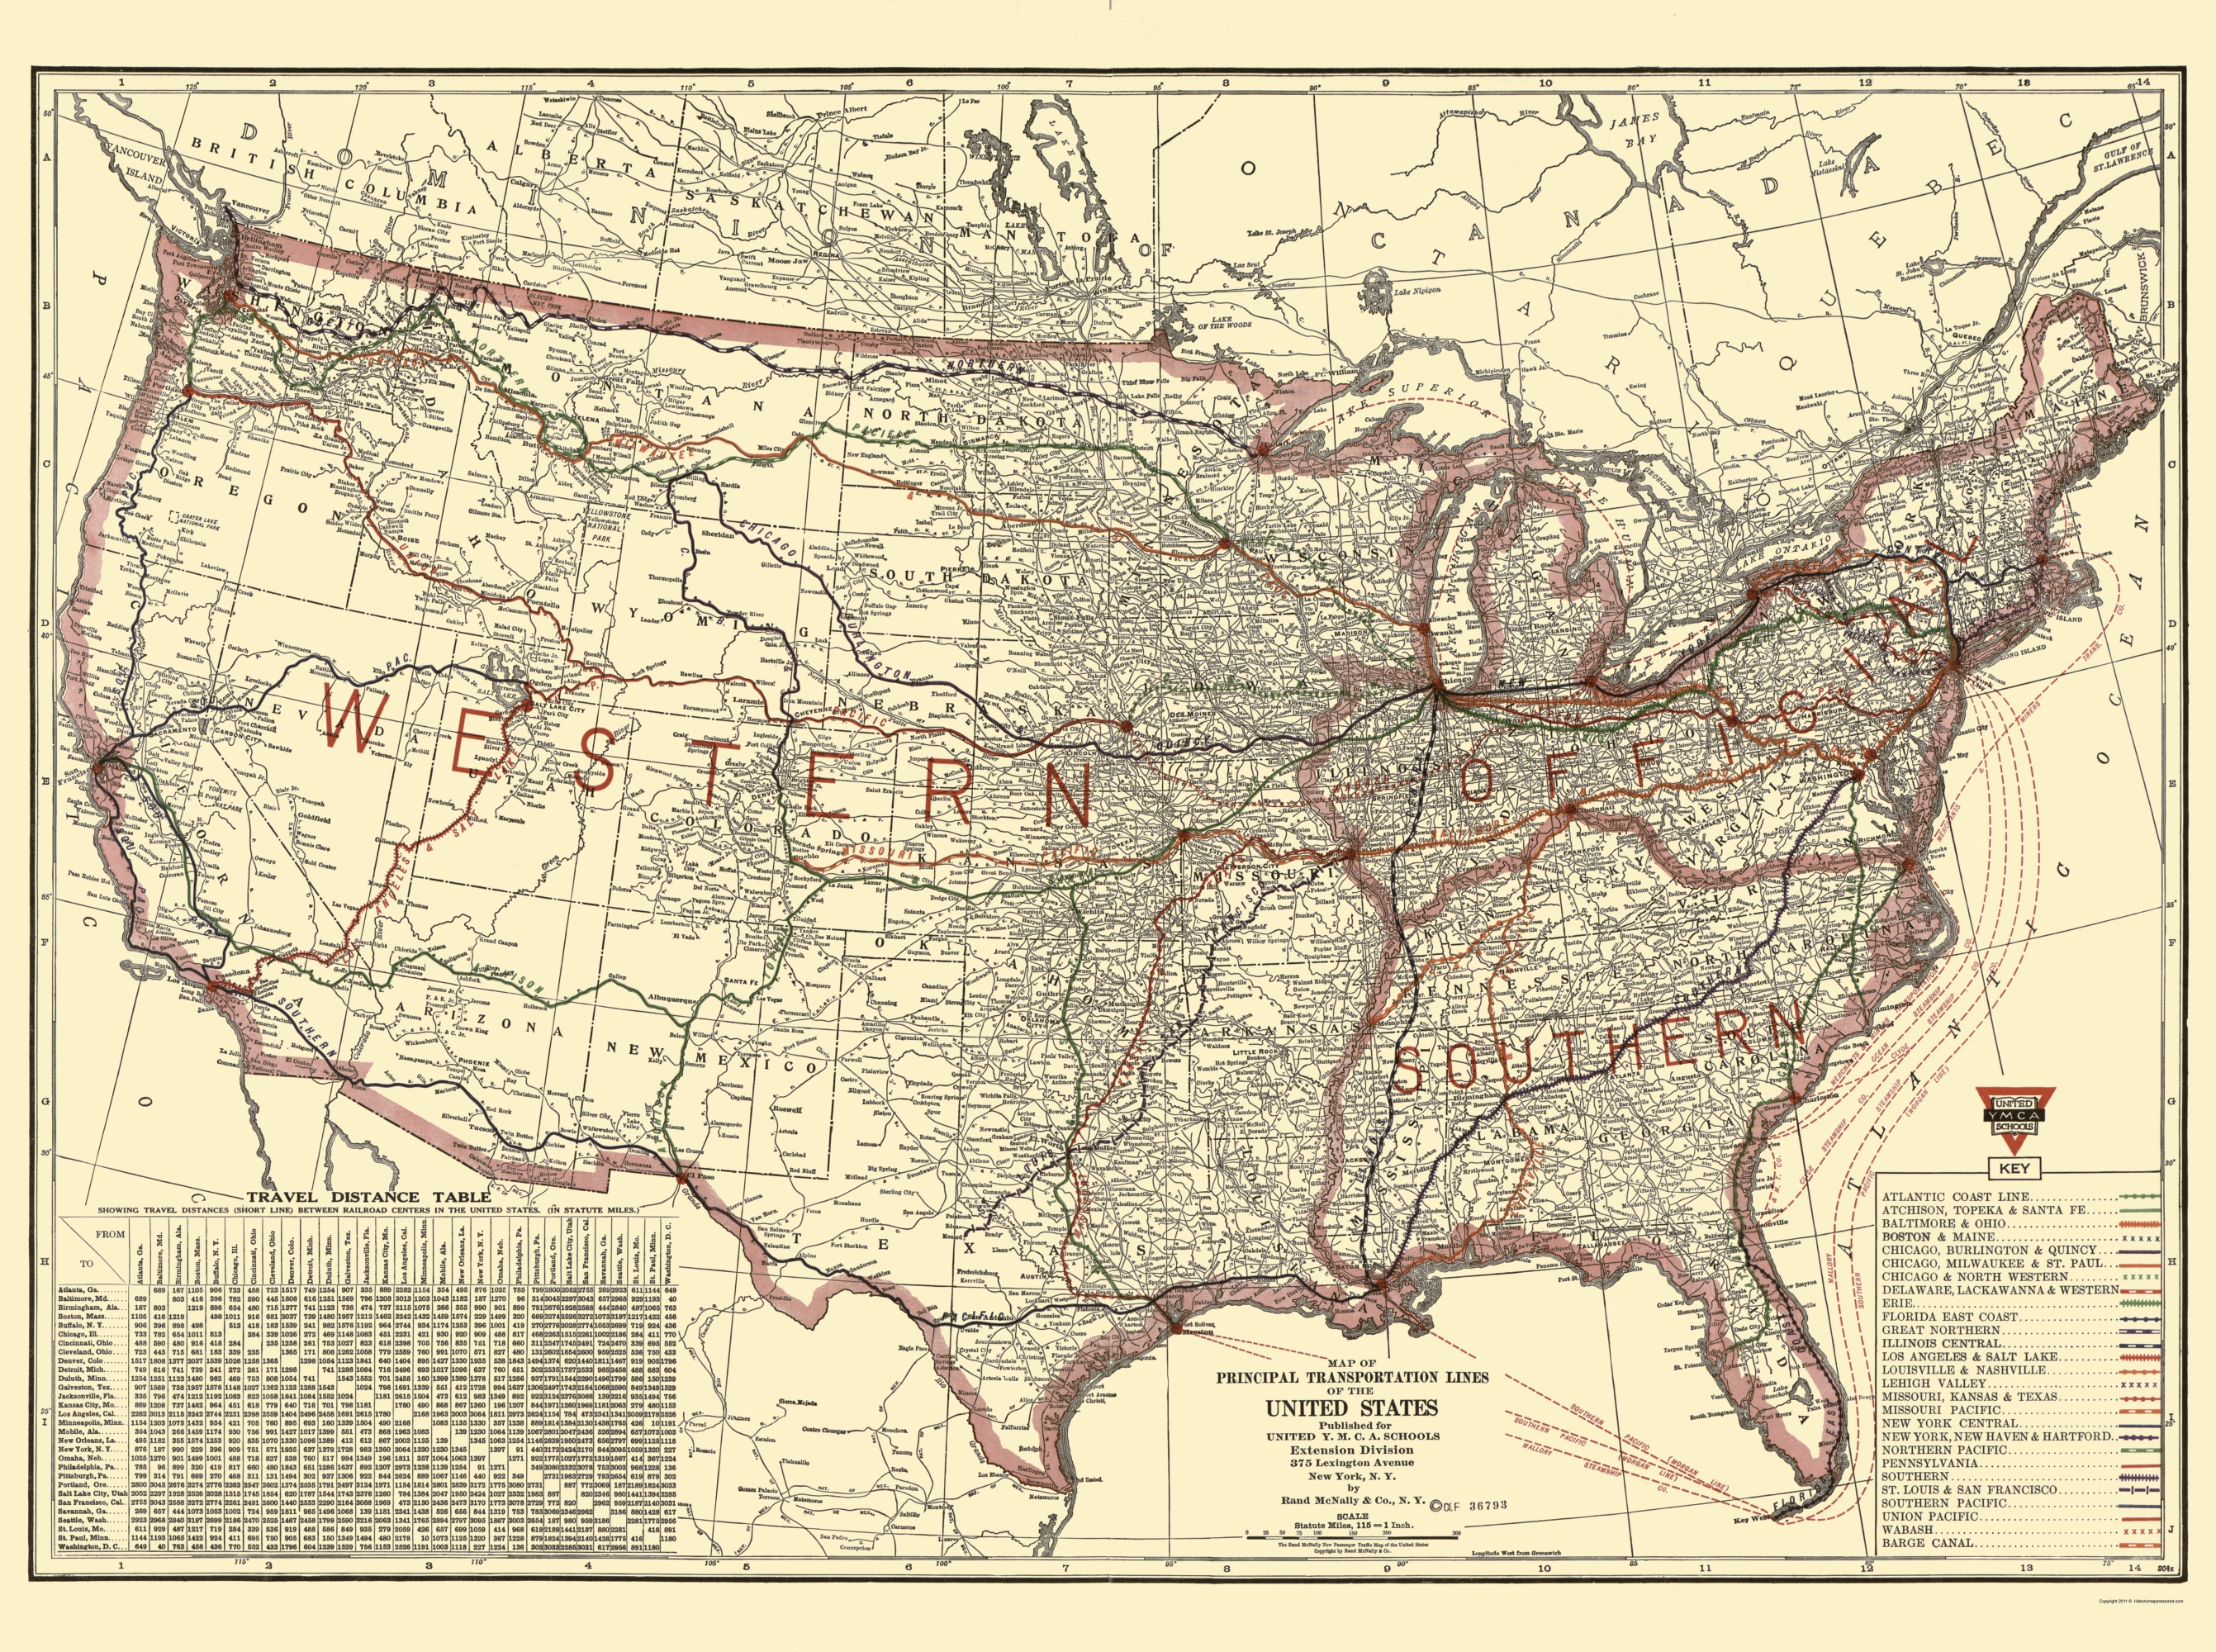 Old Map United States Transportation Lines 1921 - Old-map-of-us